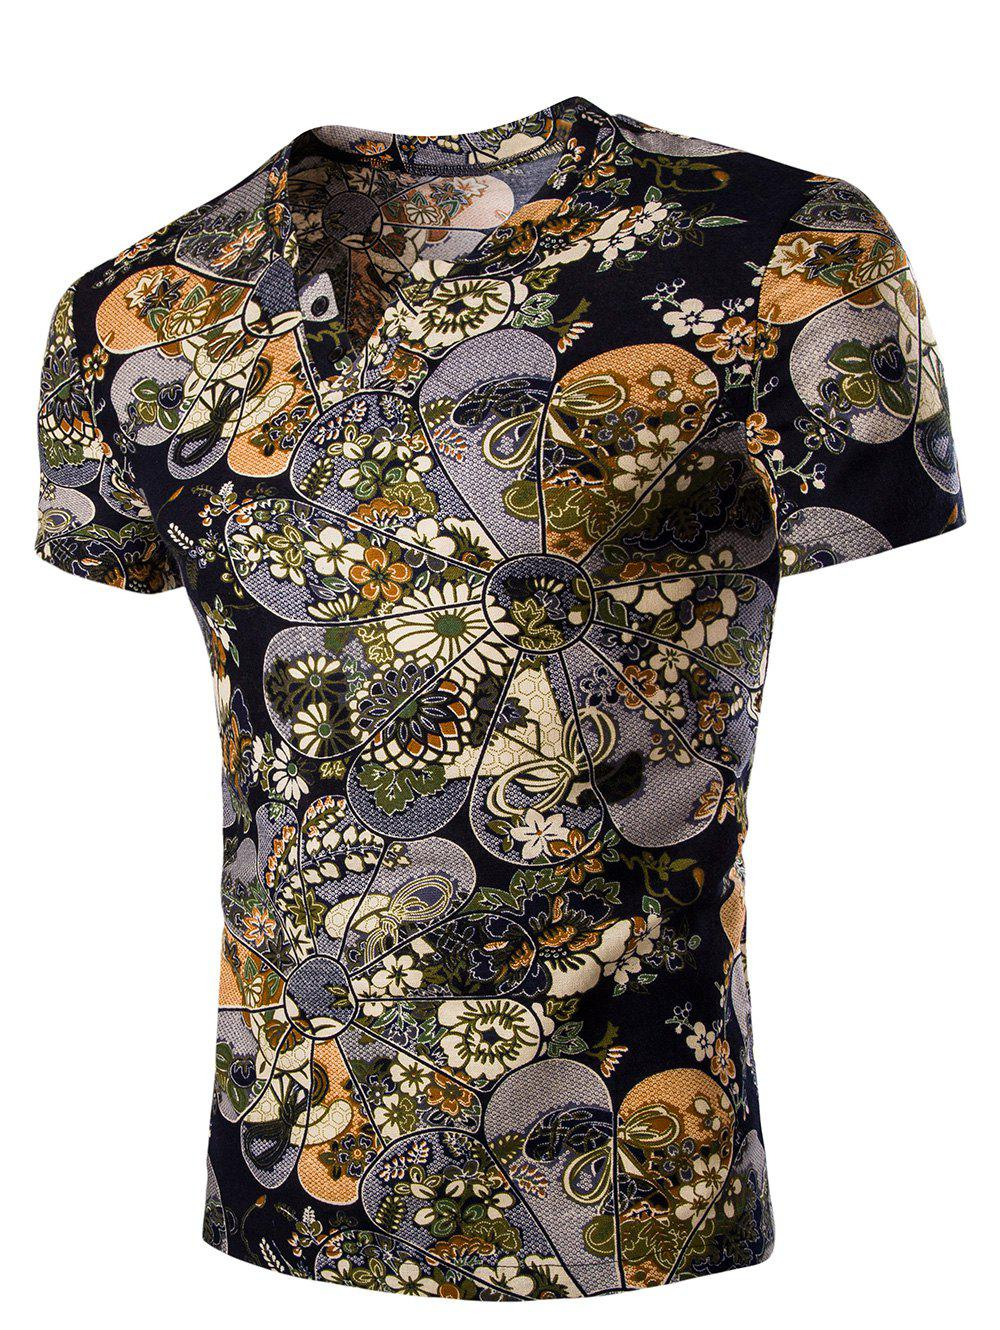 Men's Casual V Neck Flower Printing Short Sleeves T-Shirt - COLORMIX M